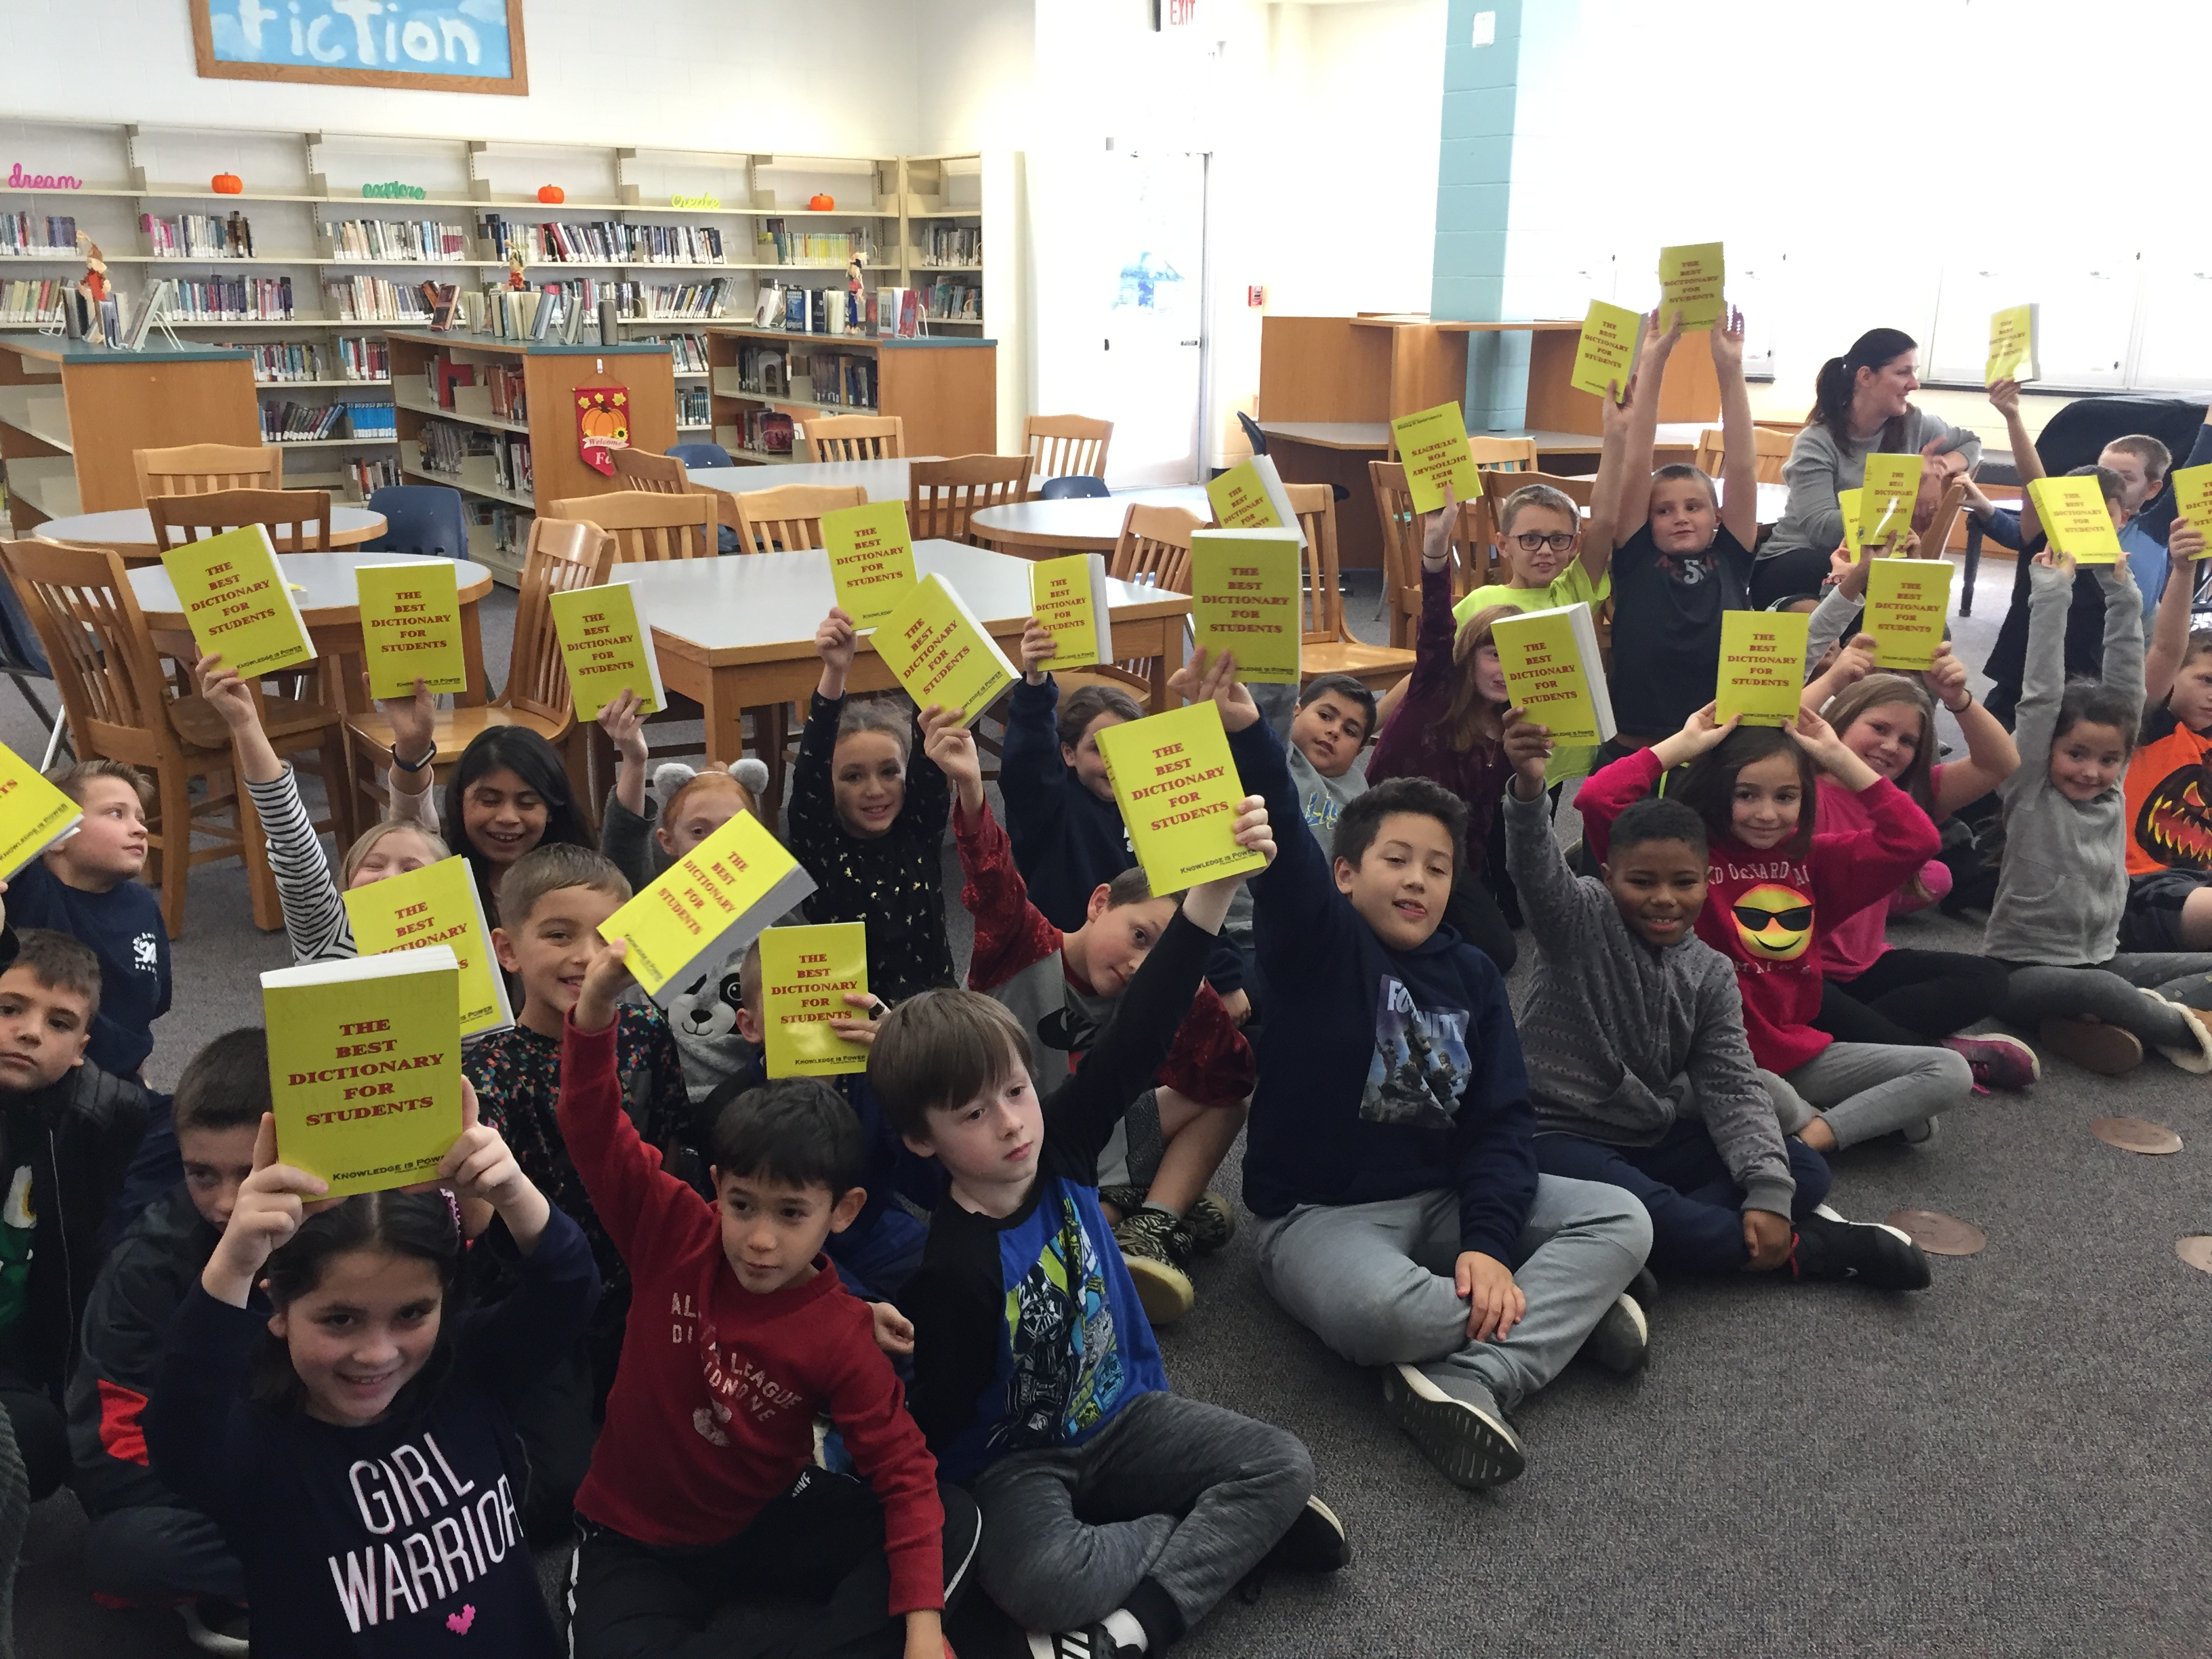 Rotary Club Dictionary Donations to 3rd Grade